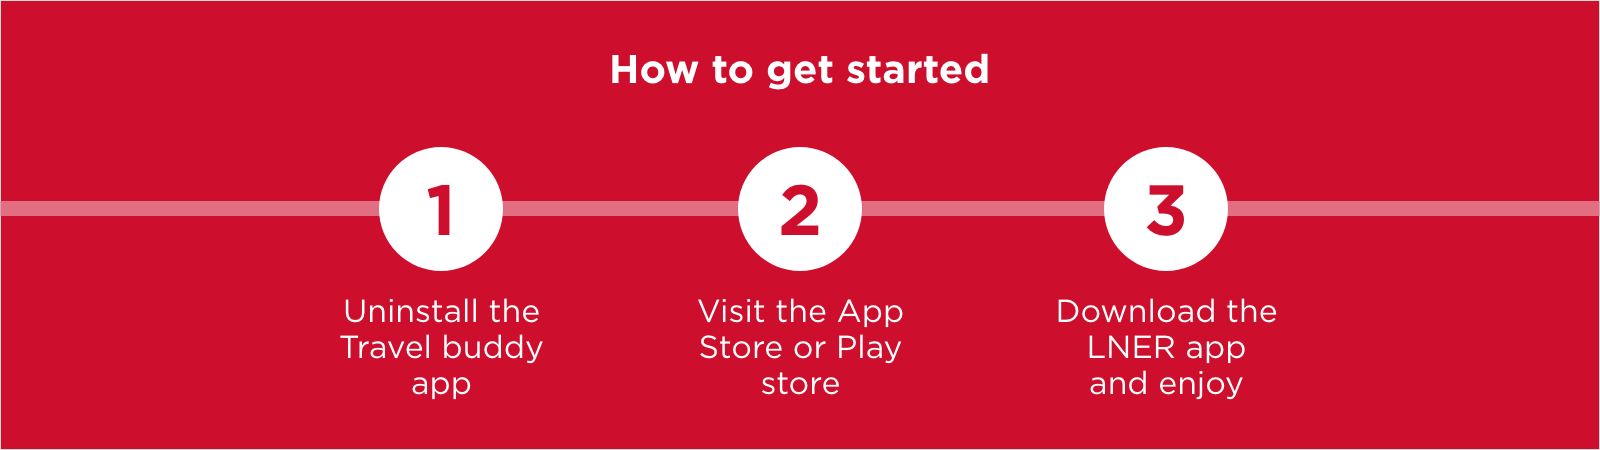 Get started by uninstalling the old Travel Buddy app, then downloading the LNER App from the Play Store or App Store